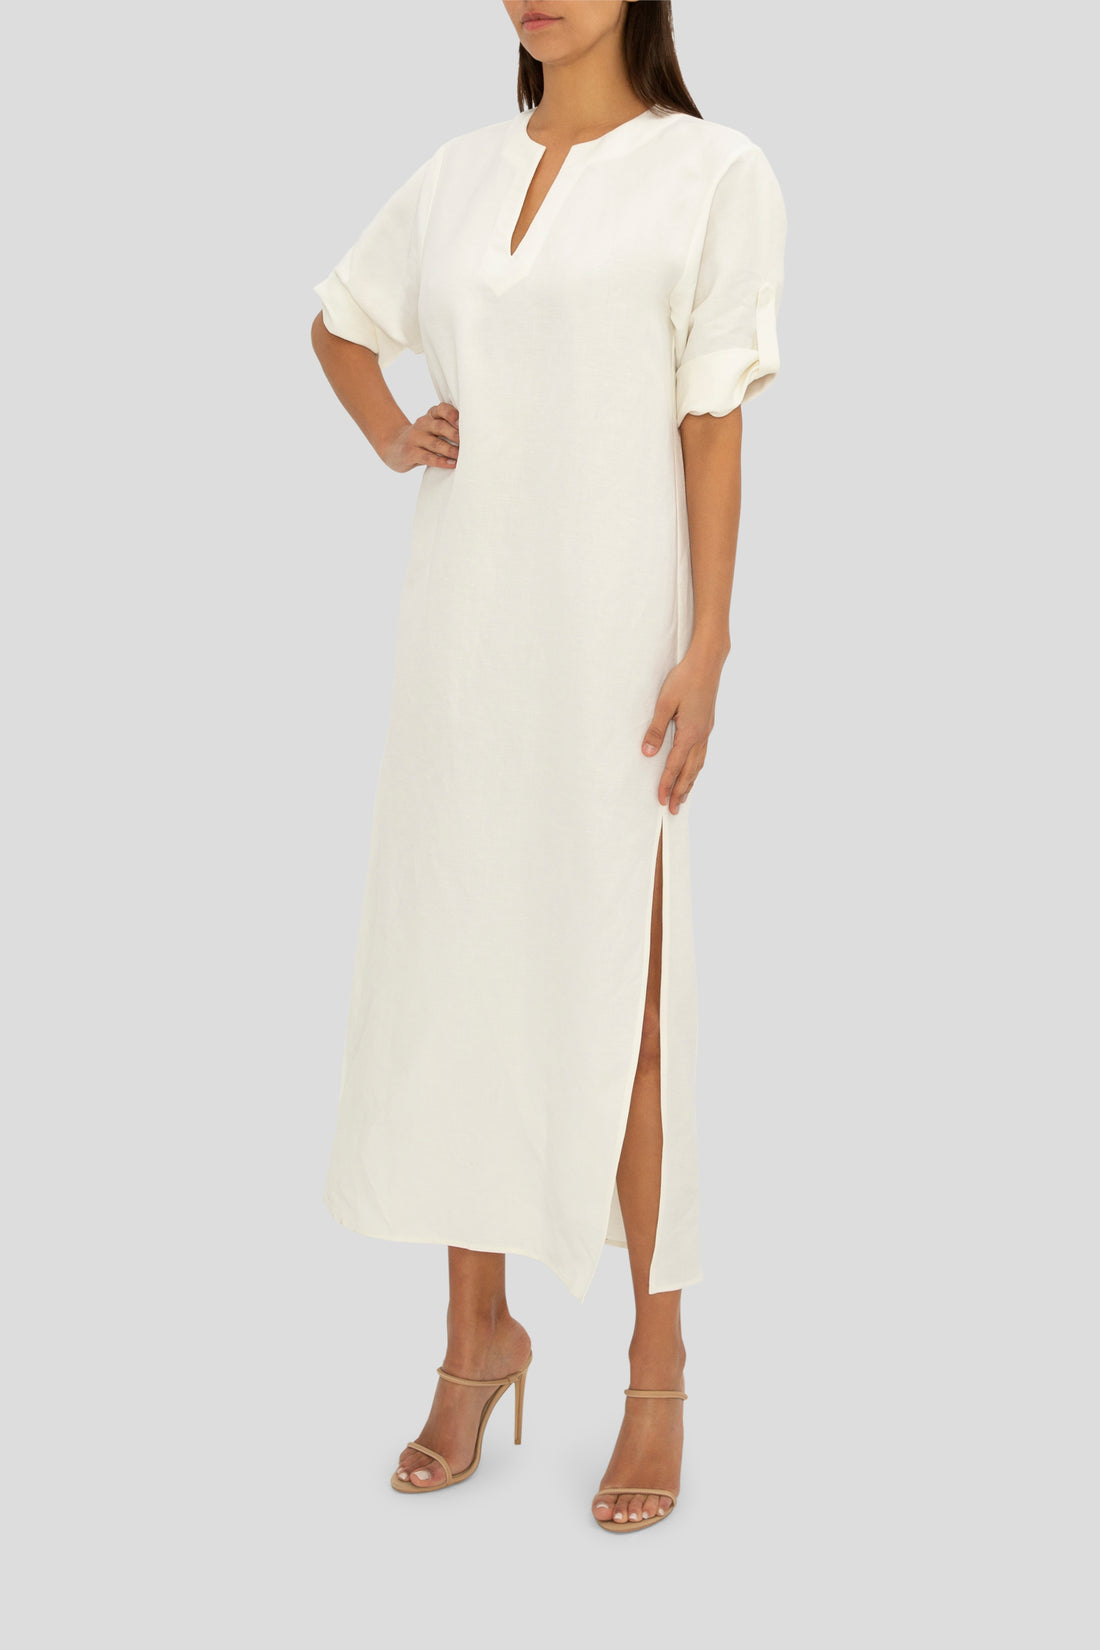 WHITE LINEN SUMMER HOLIDAY DRESS